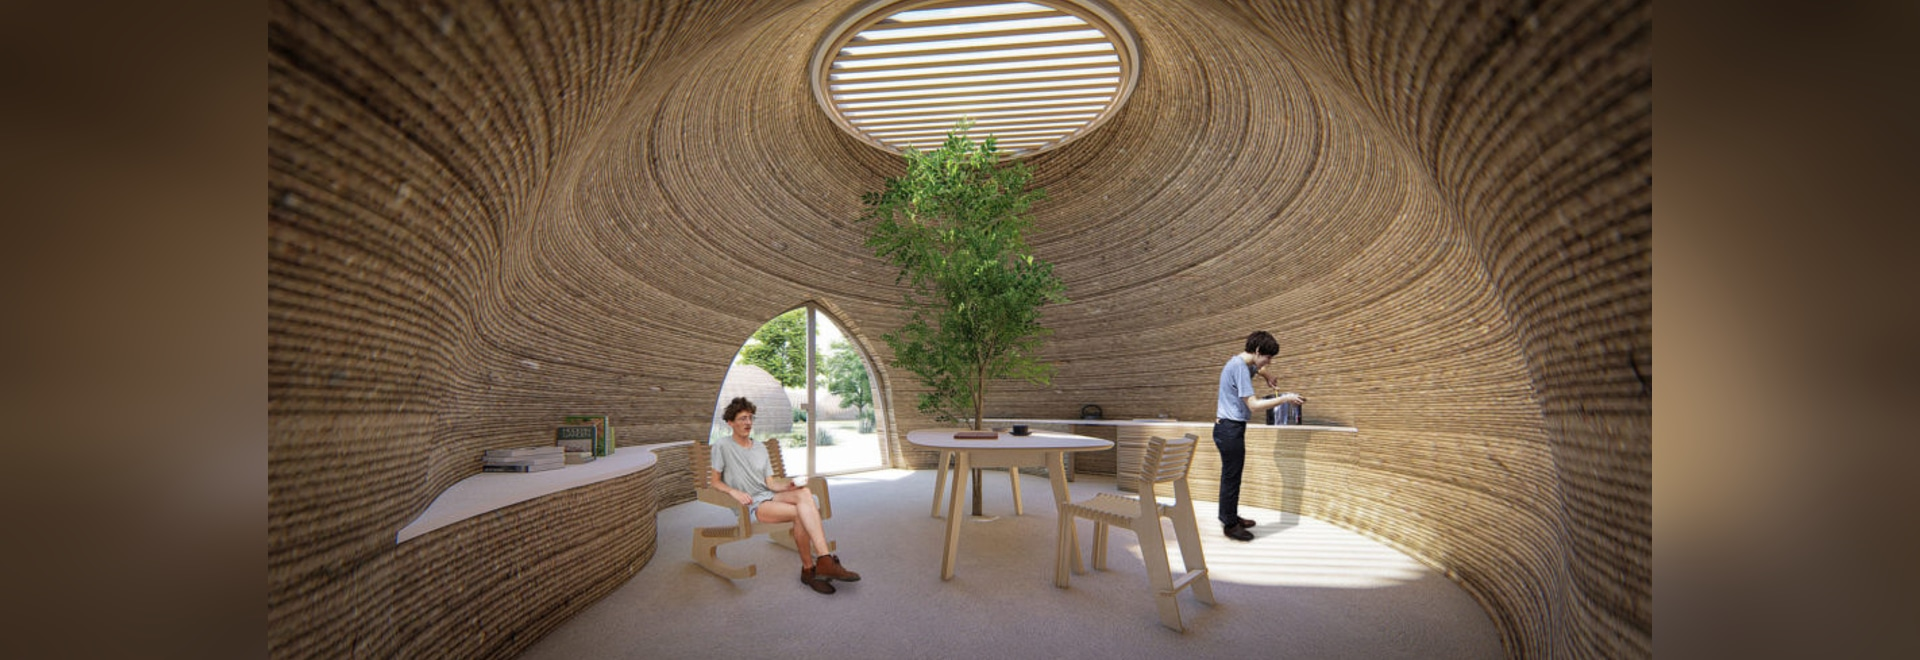 Though the home only consists of two rooms, the project will make history as the first to be entirely 3D printed using locally sourced clay.